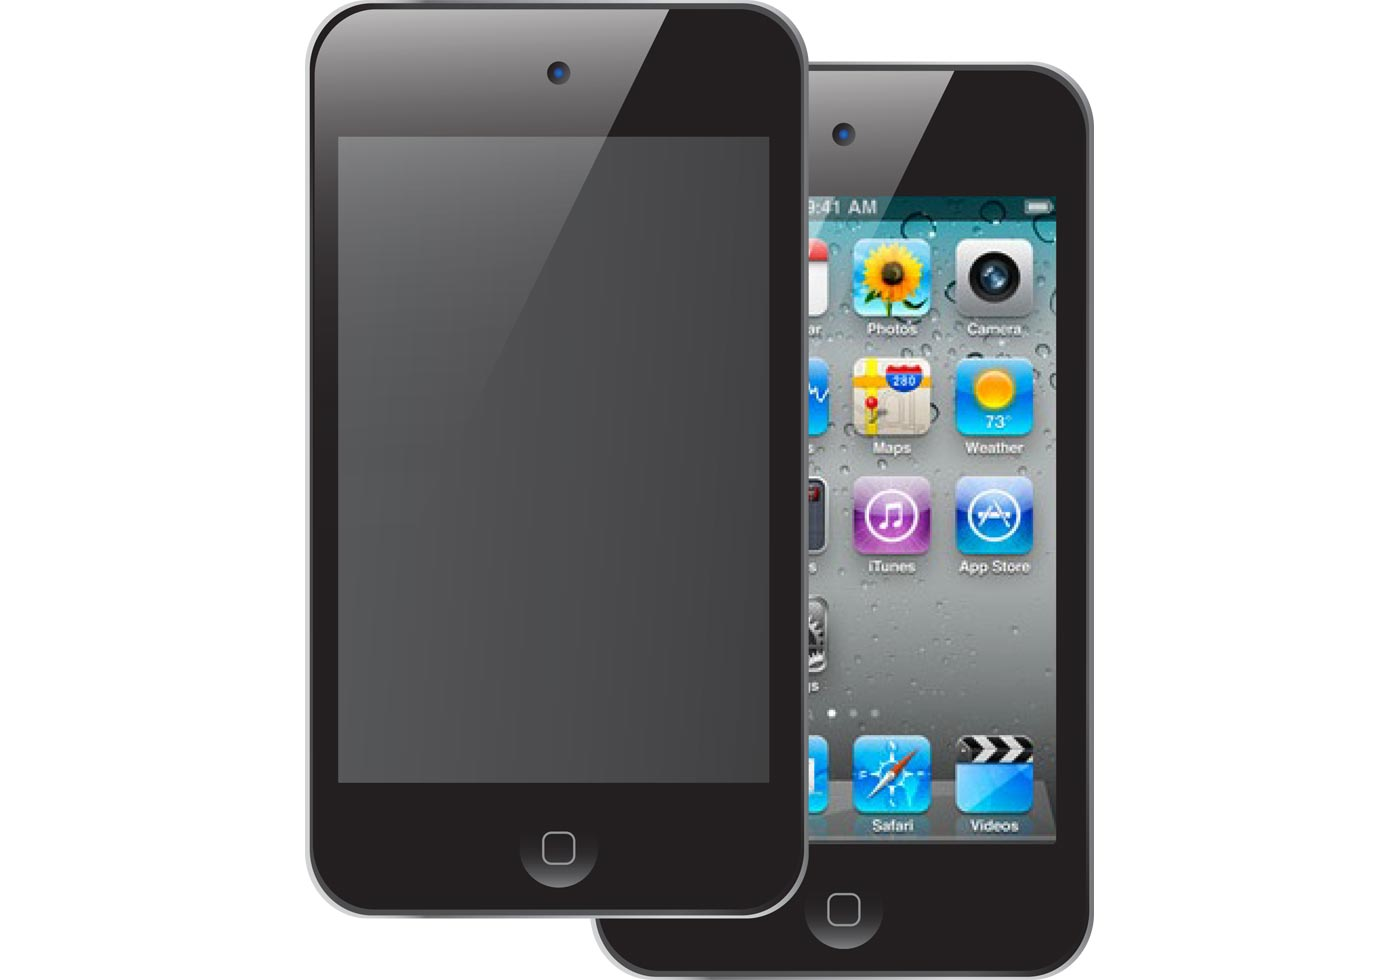 Free coupon apps for ipod touch